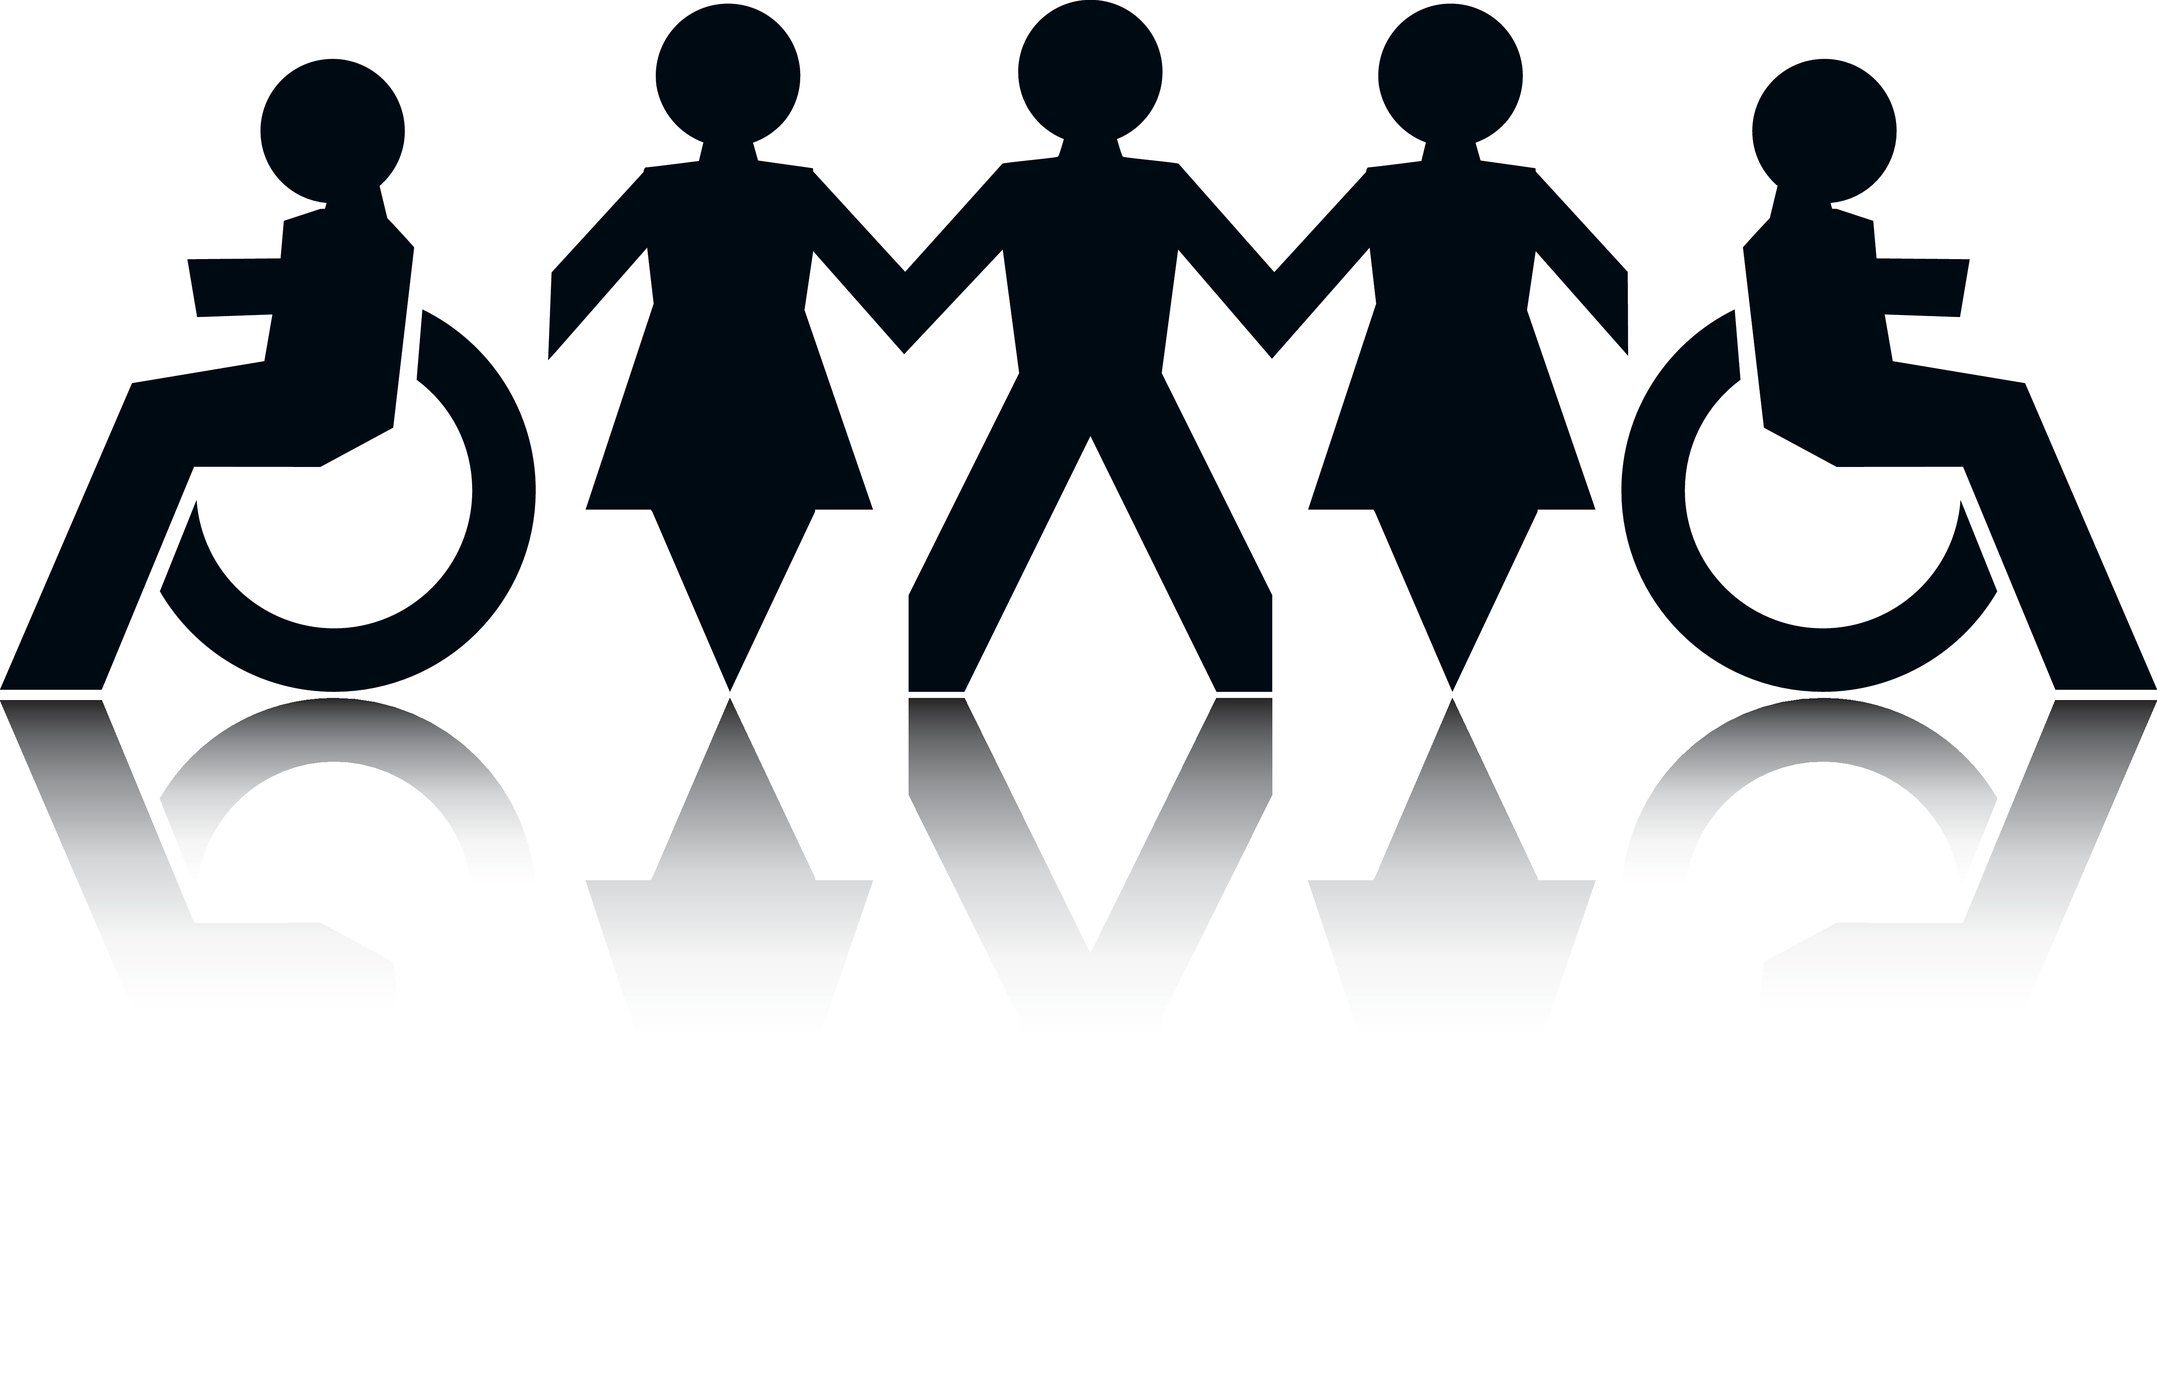 EEOC, experts offer guidance on reaching disability hiring